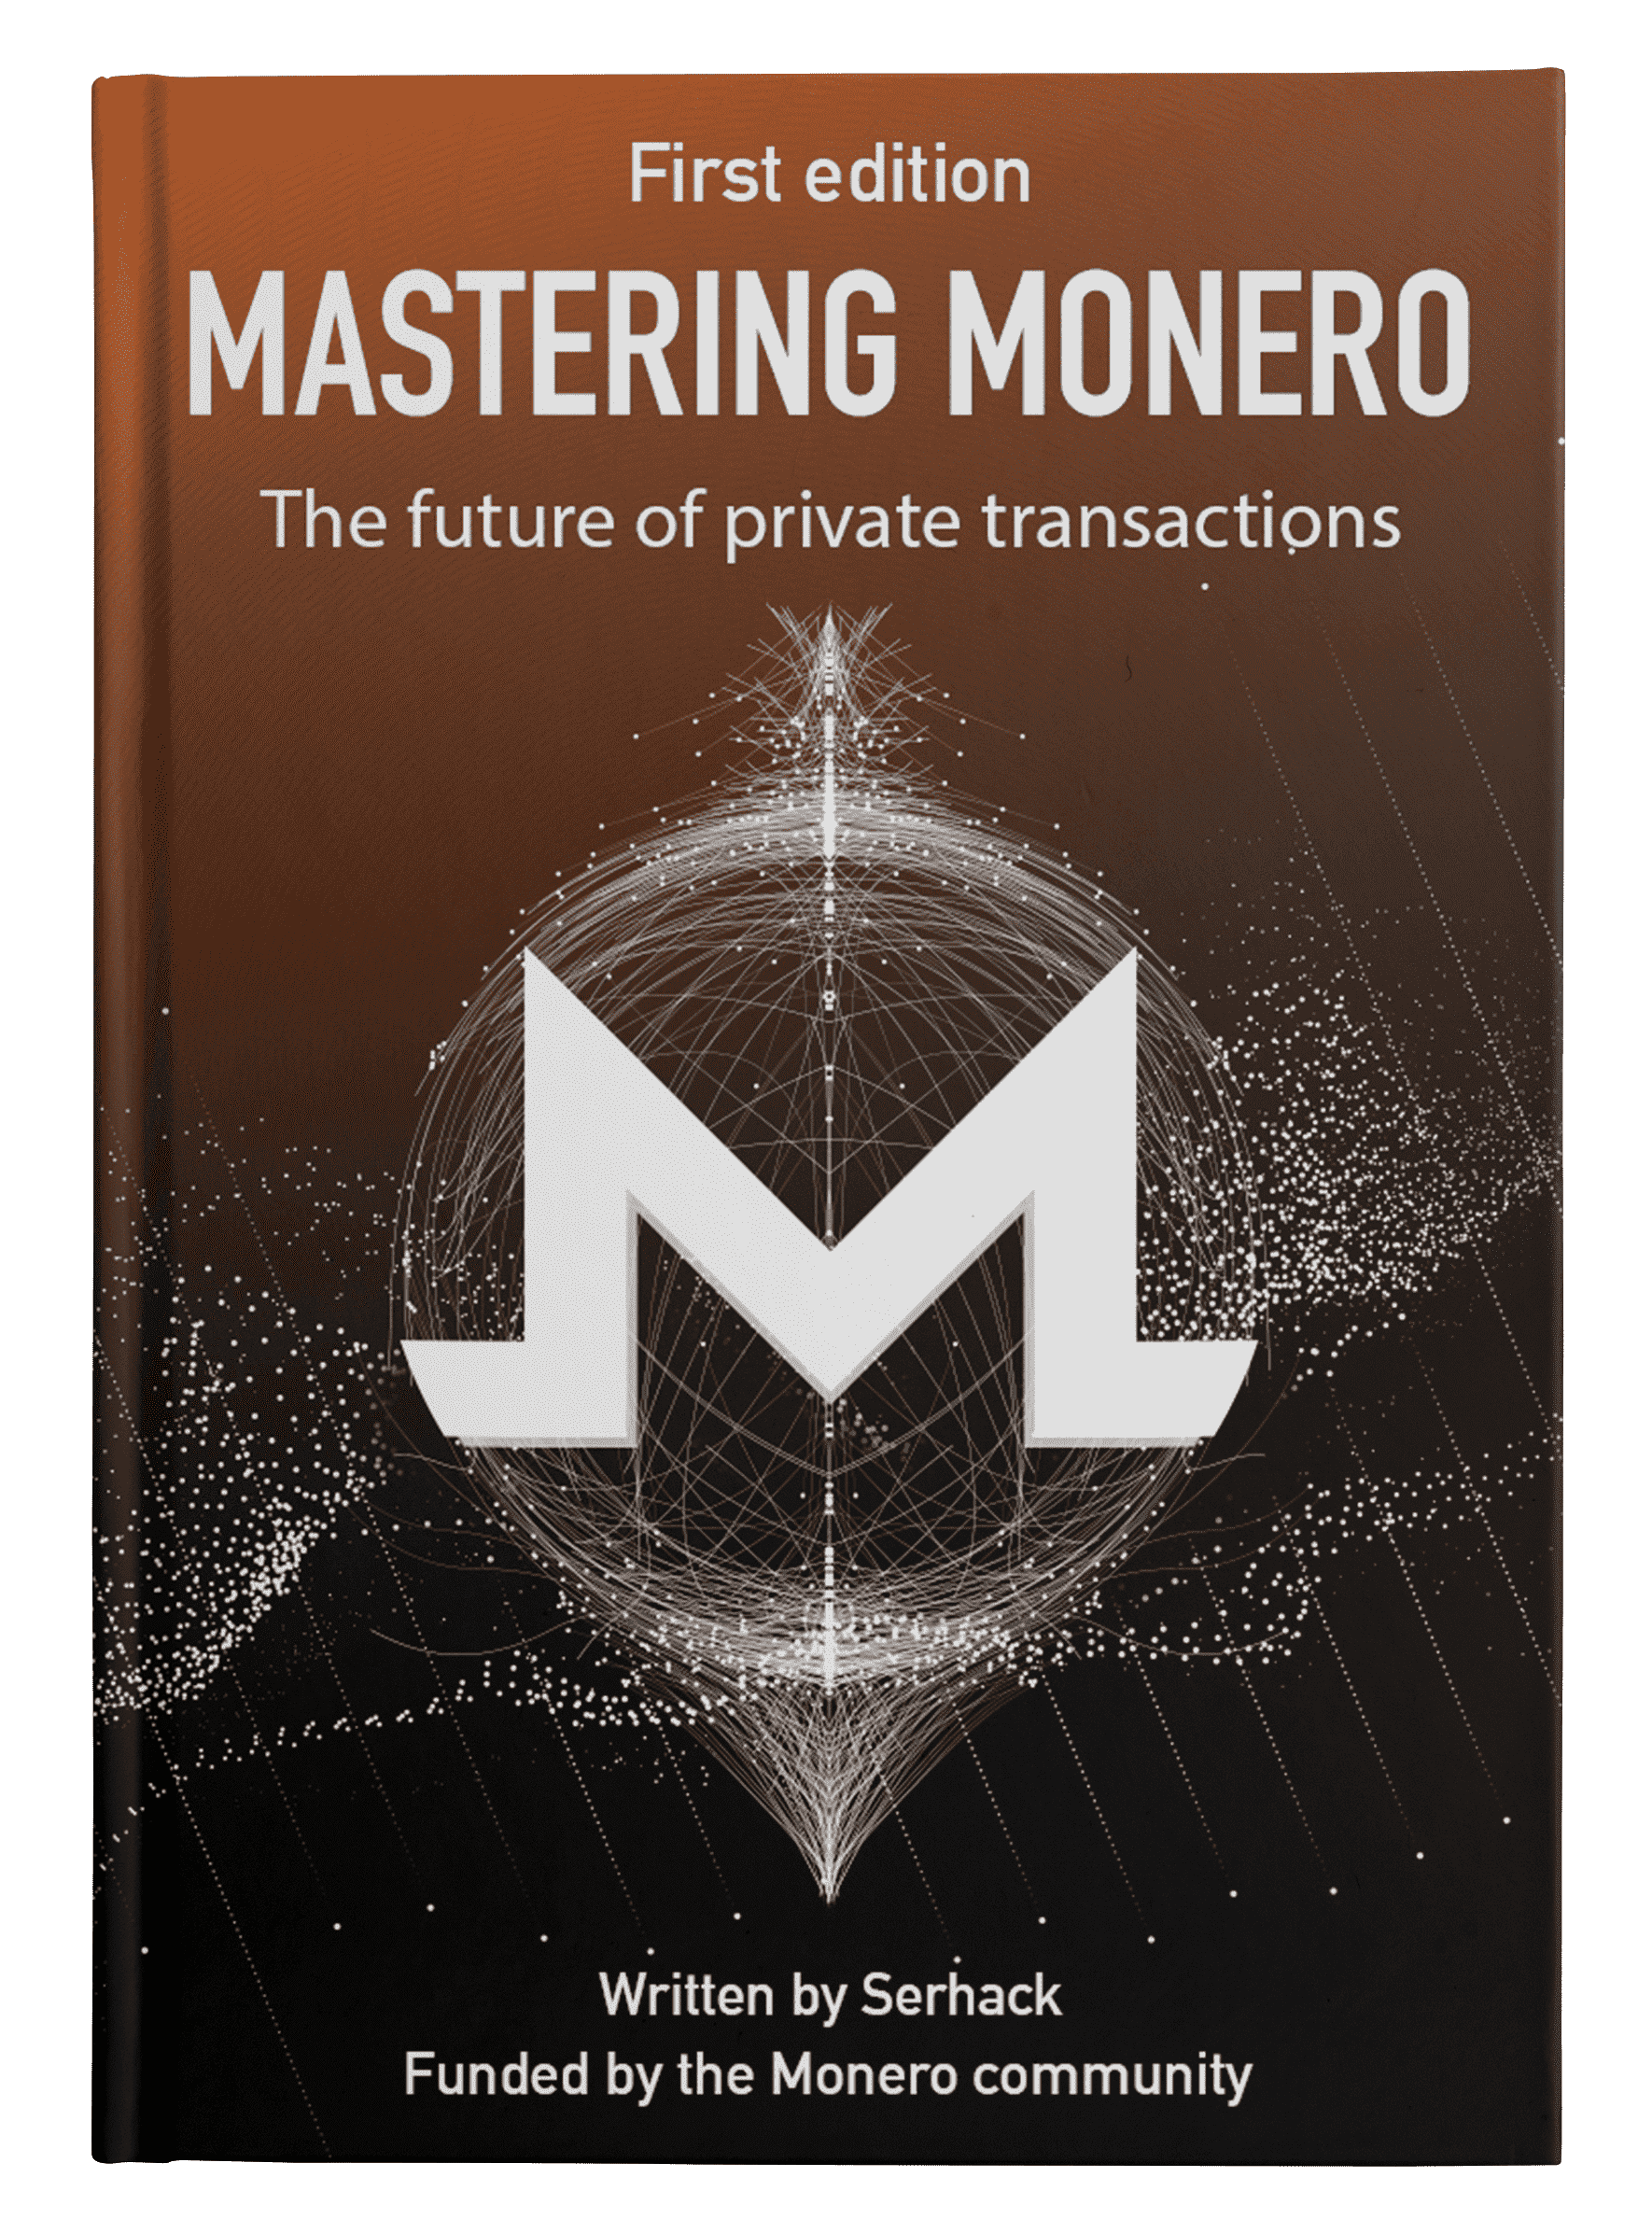 Mastering Monero first edition has been released illustration